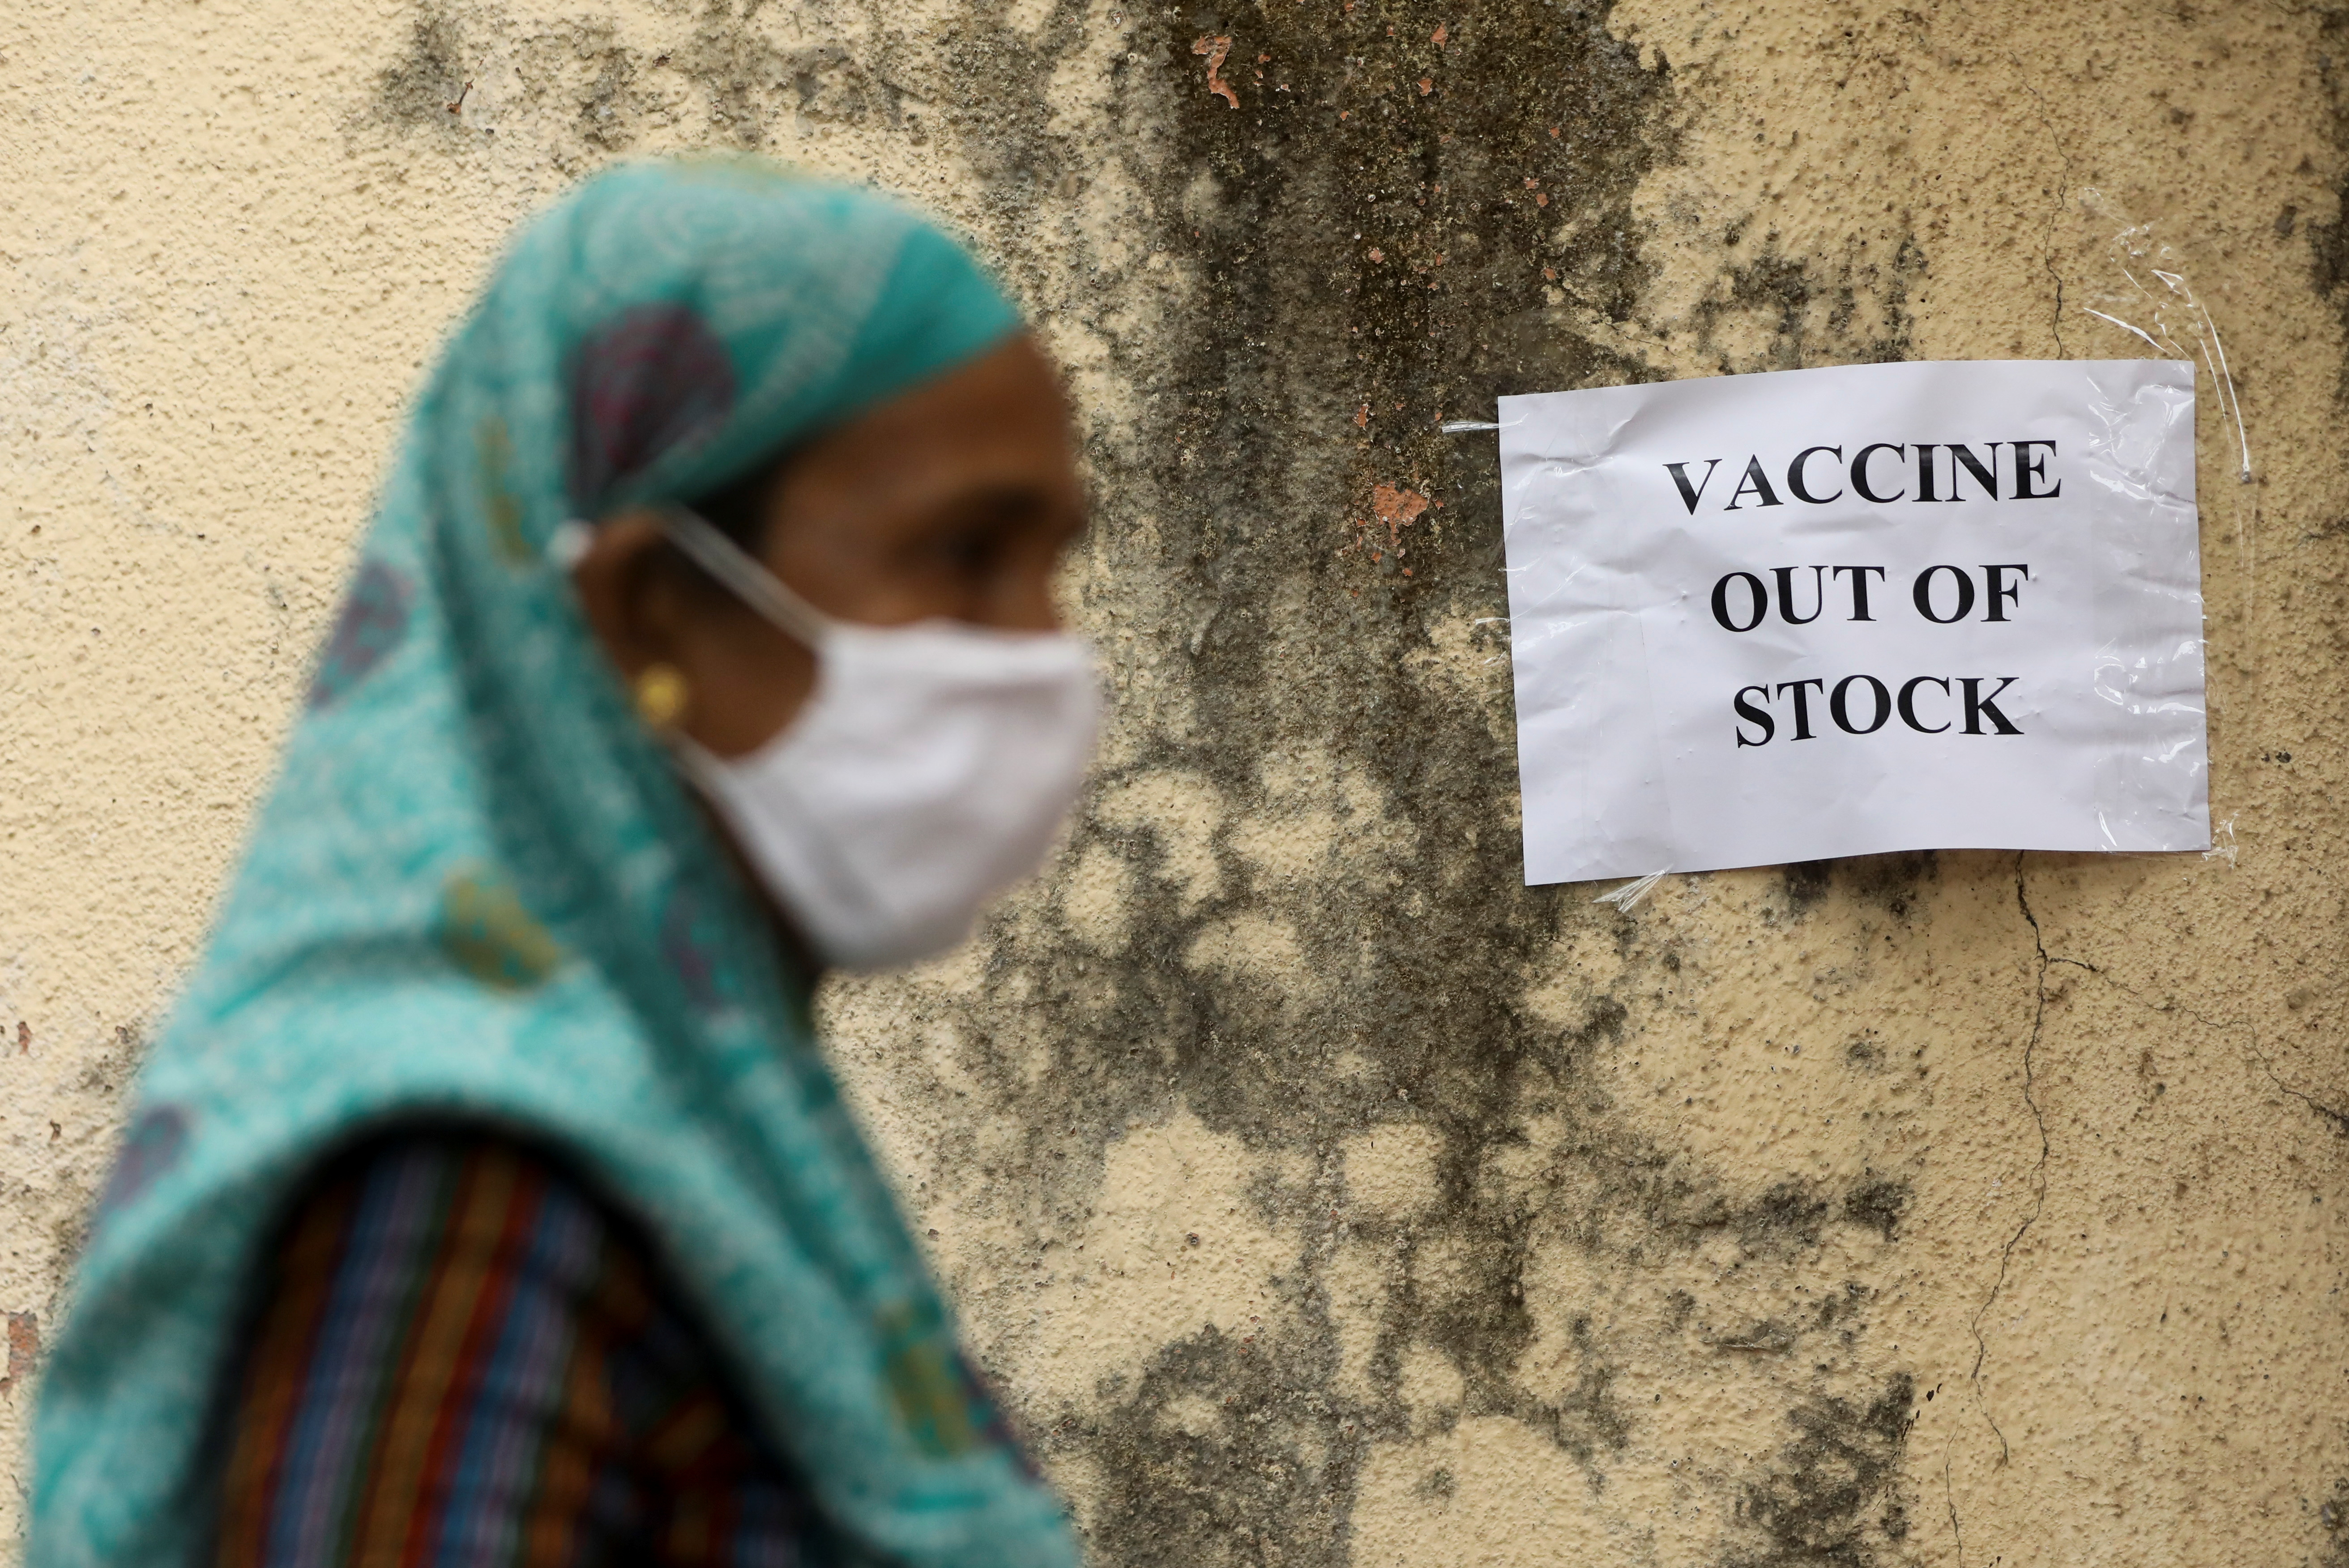 A notice about the shortage of coronavirus disease (COVID-19) vaccine supplies is seen at a vaccination centre, in Mumbai, India, April 8, 2021. REUTERS/Francis Mascarenhas/File photo